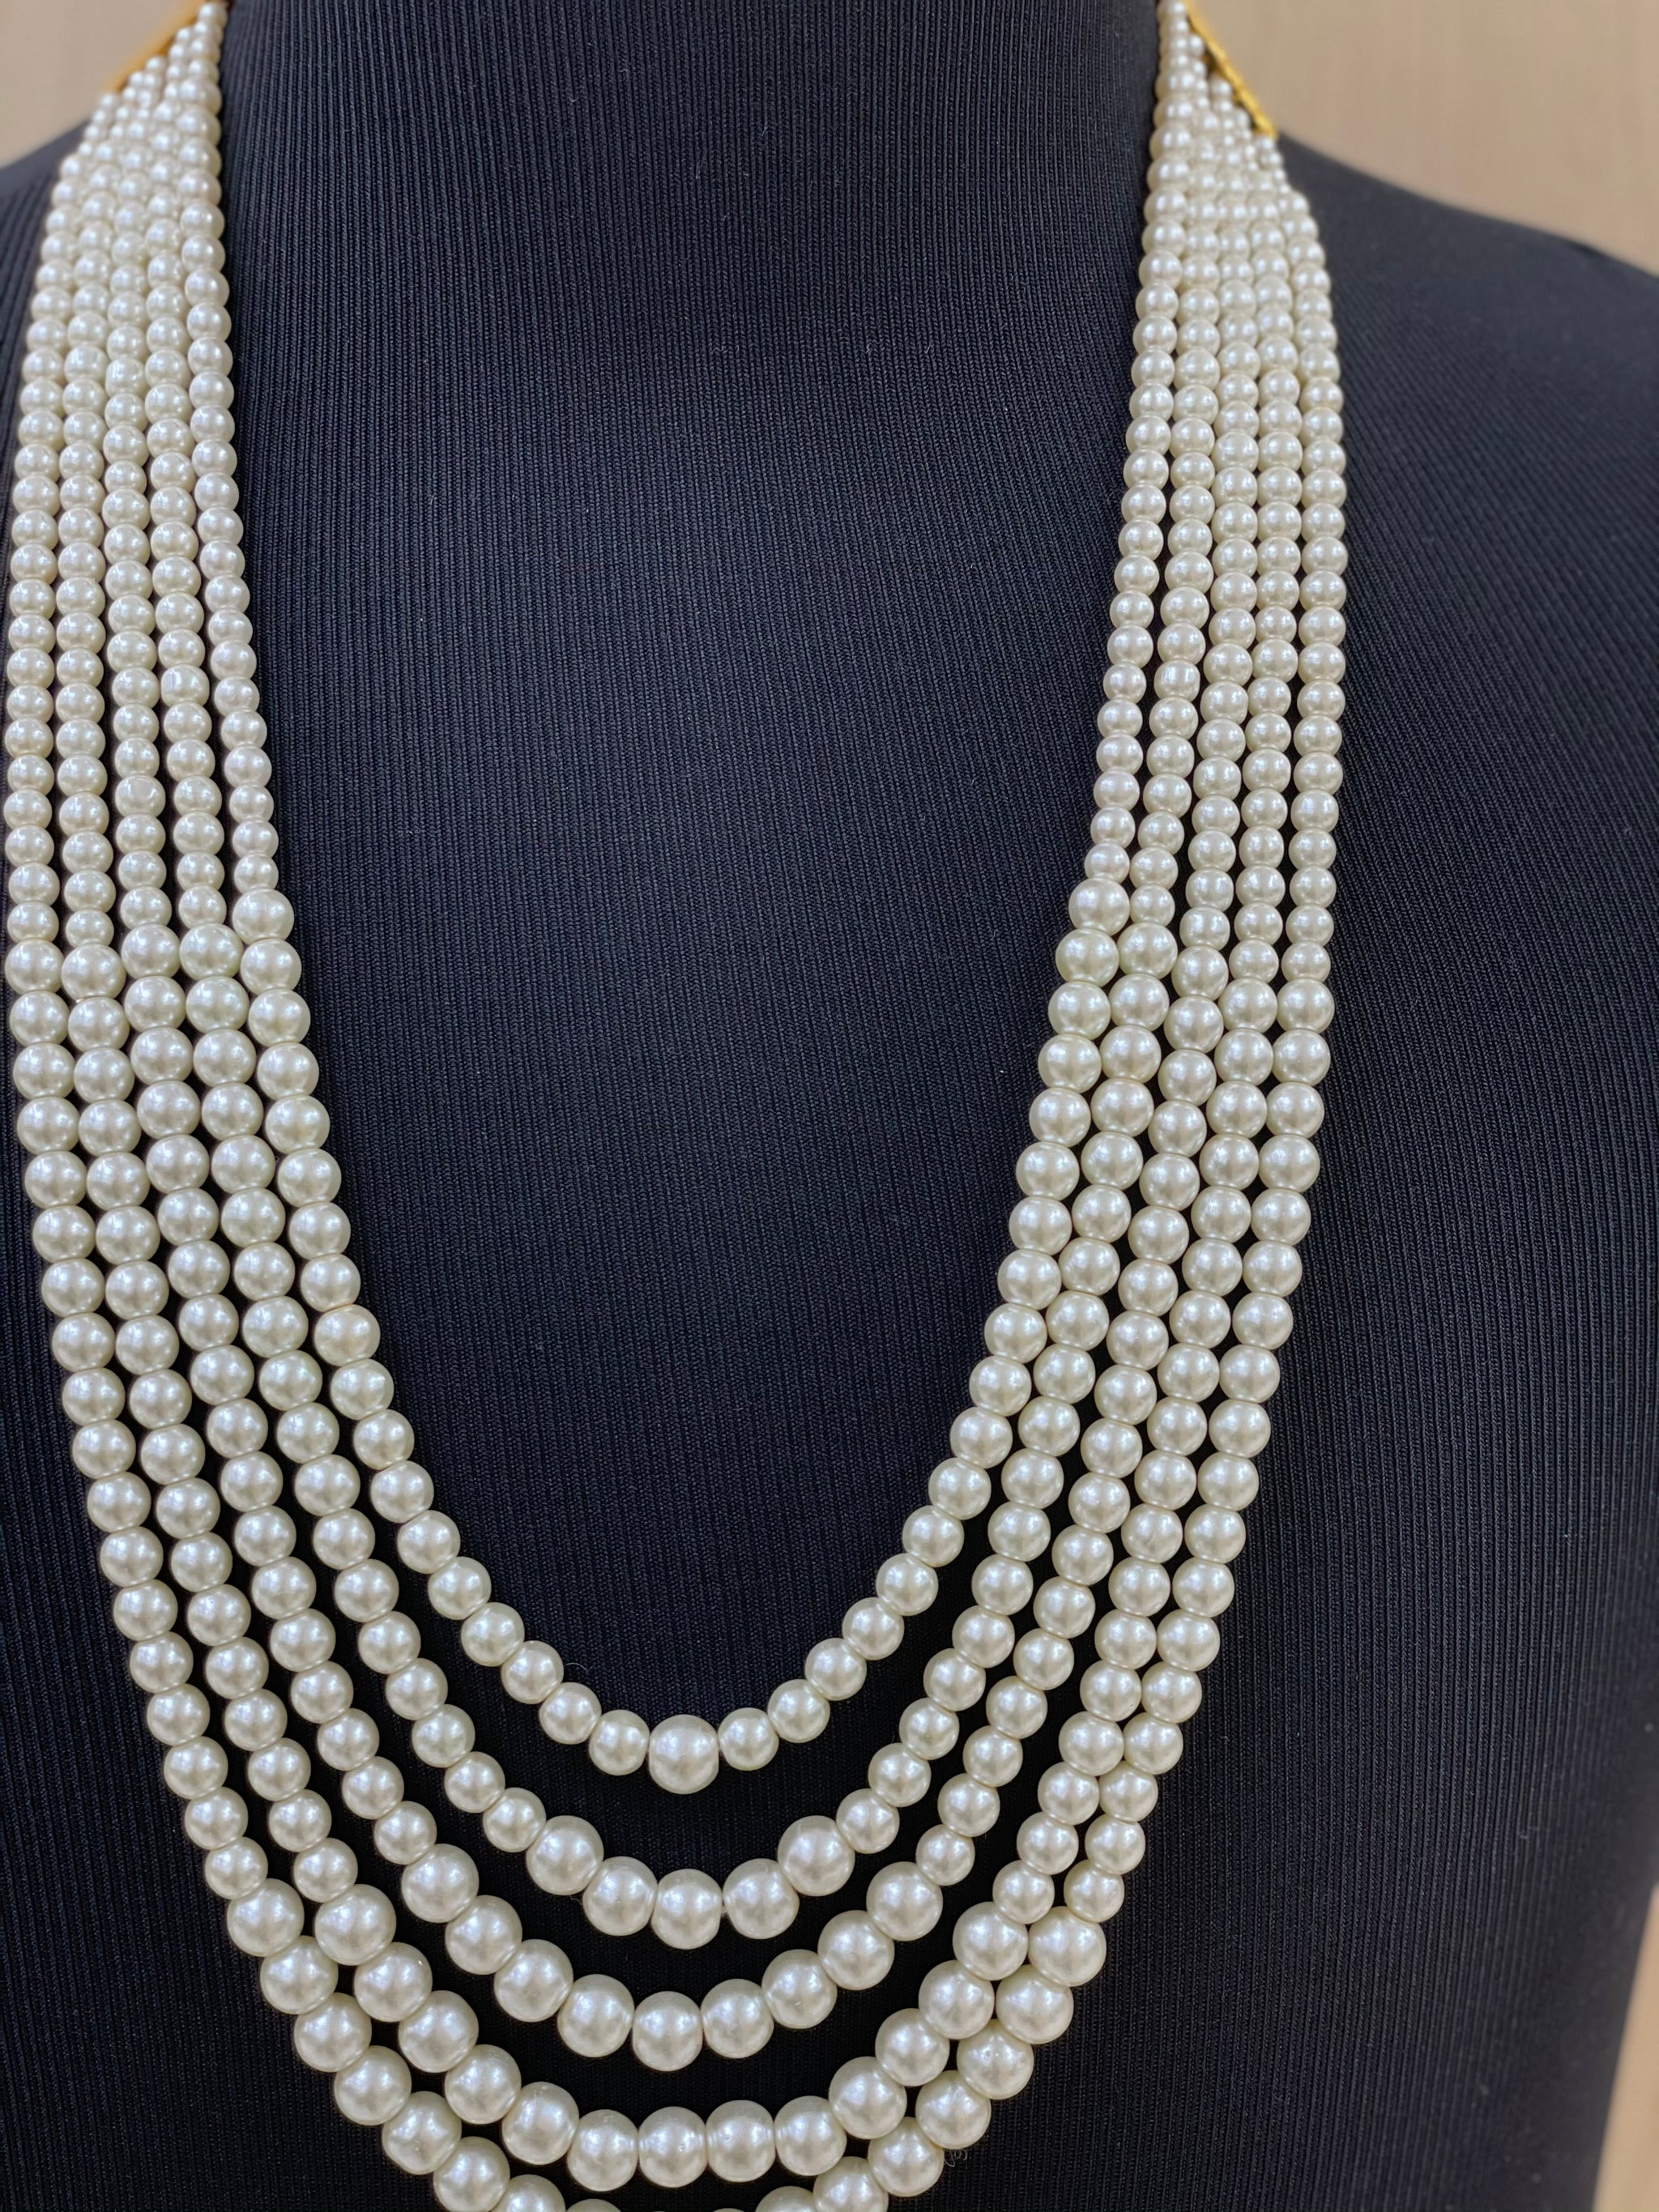 Groom's Shahi Moti Necklaces